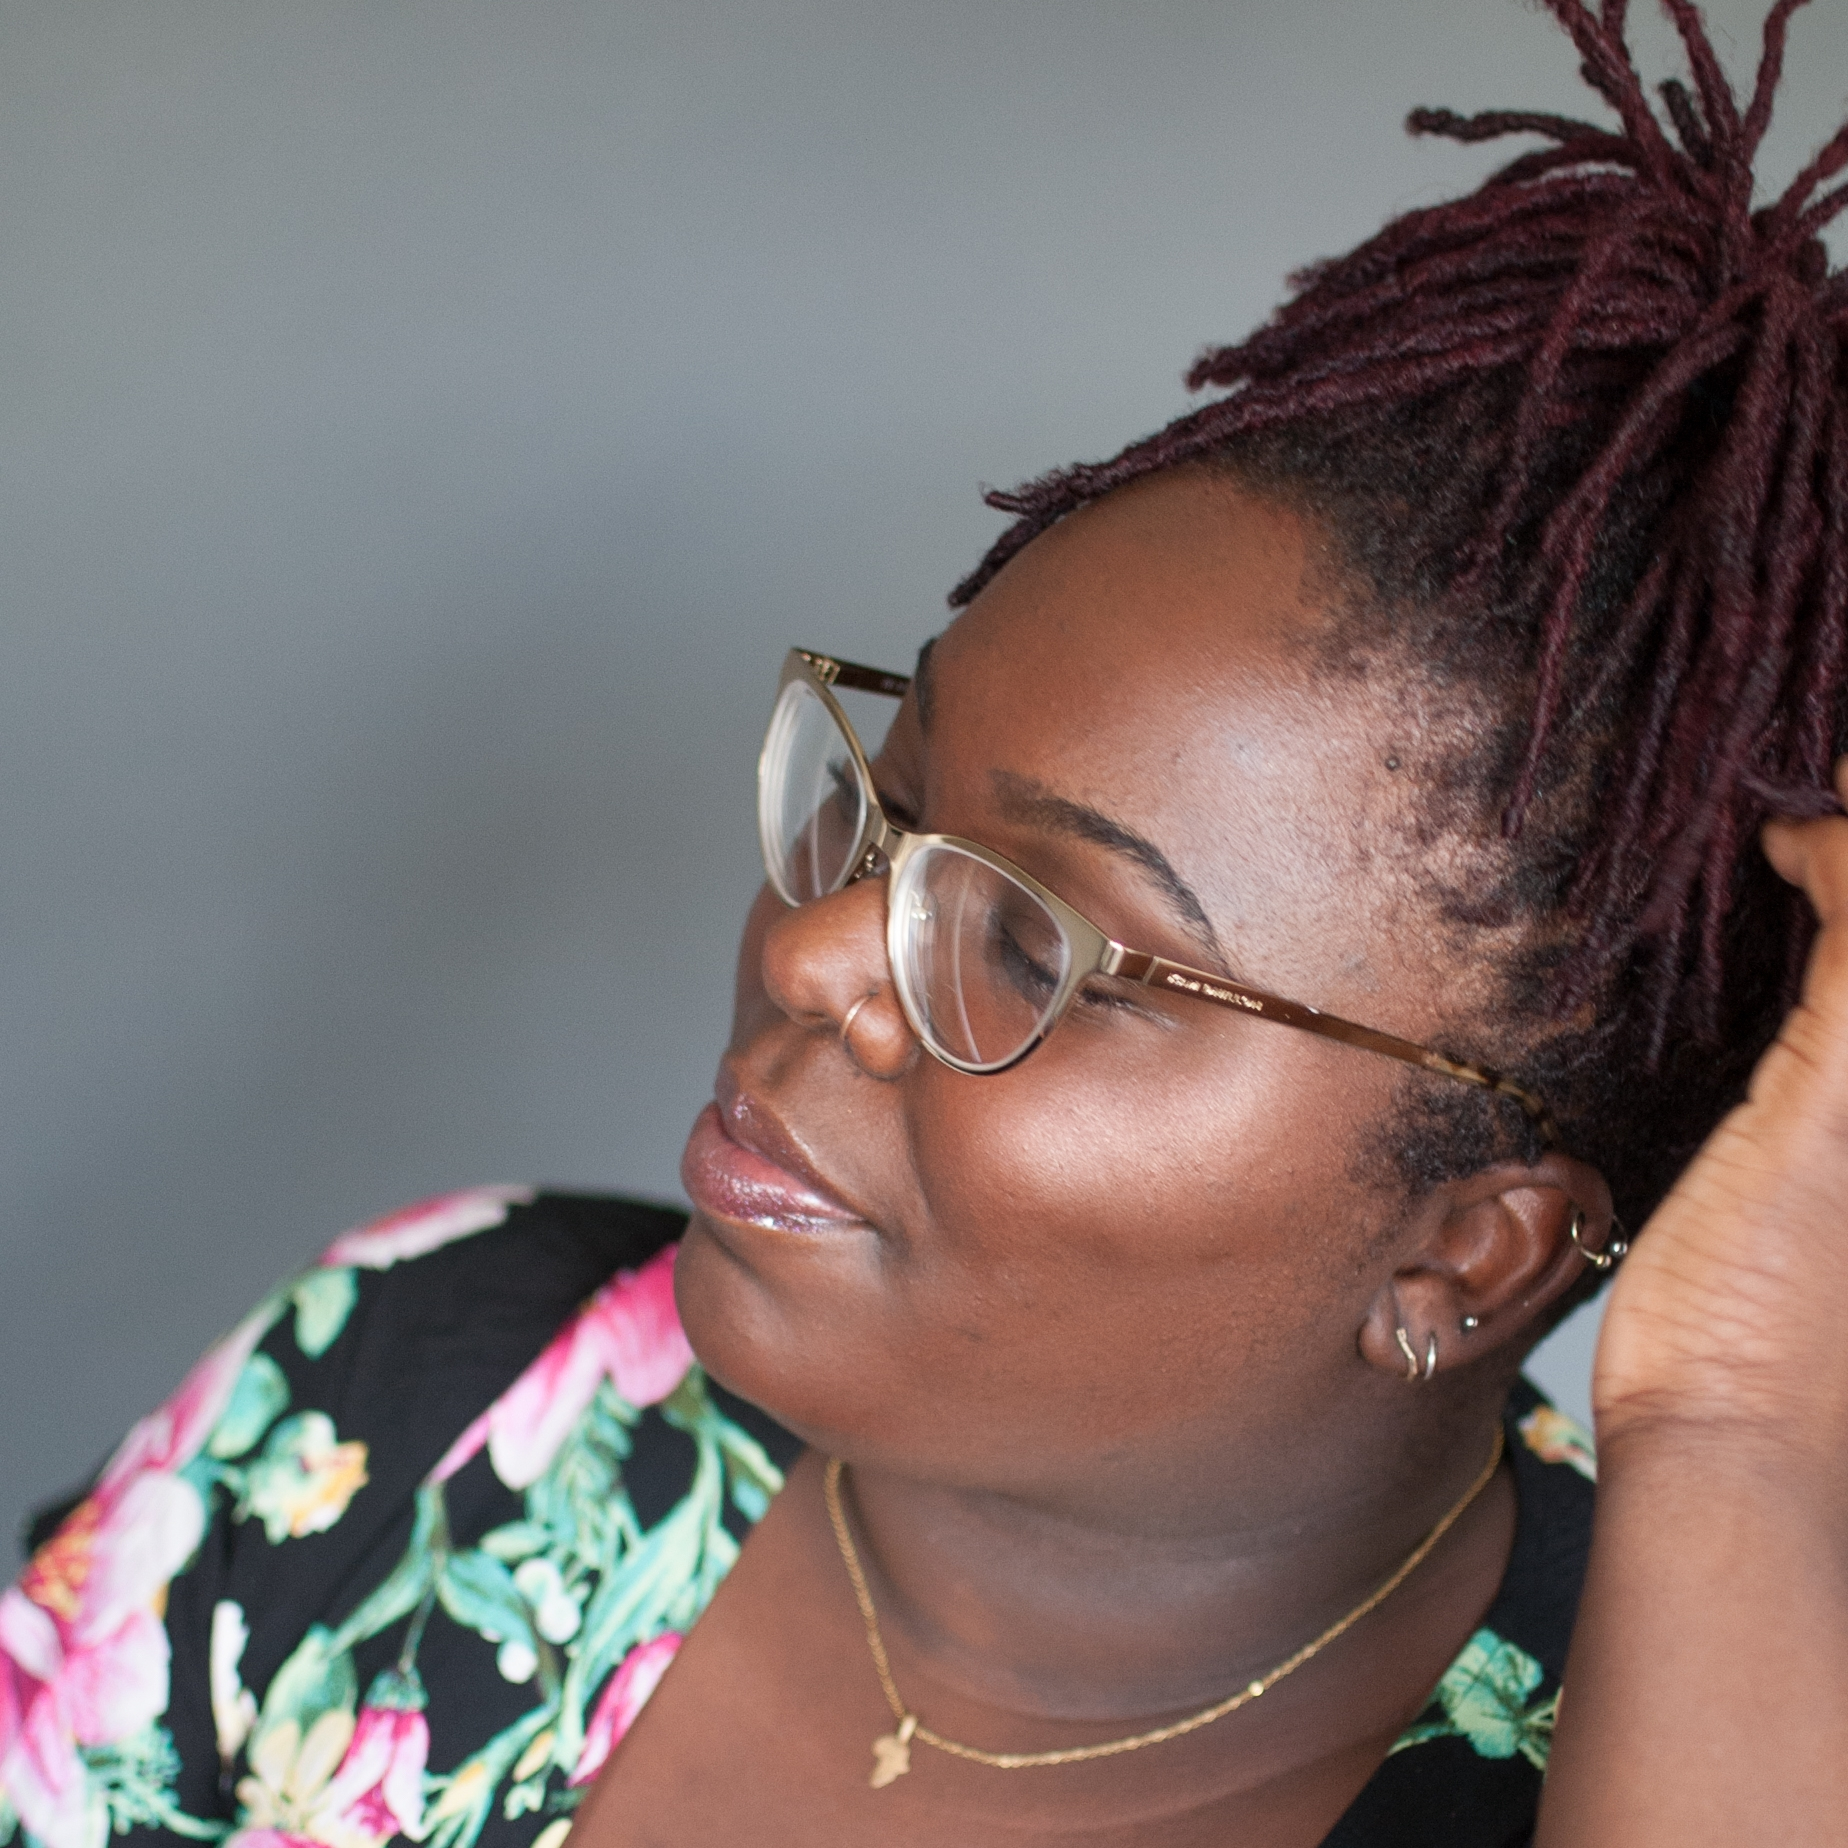 Sajae Elder - Managing EditorSajae is a writer, digital producer & all around creative who uses multi-disciplinary storytelling to discuss music, womanhood, and notions of cultural identity. She co-founded the podcast GYALCAST and served as a host for two years before switching gears to start her own music-focused show FREE GOODS.